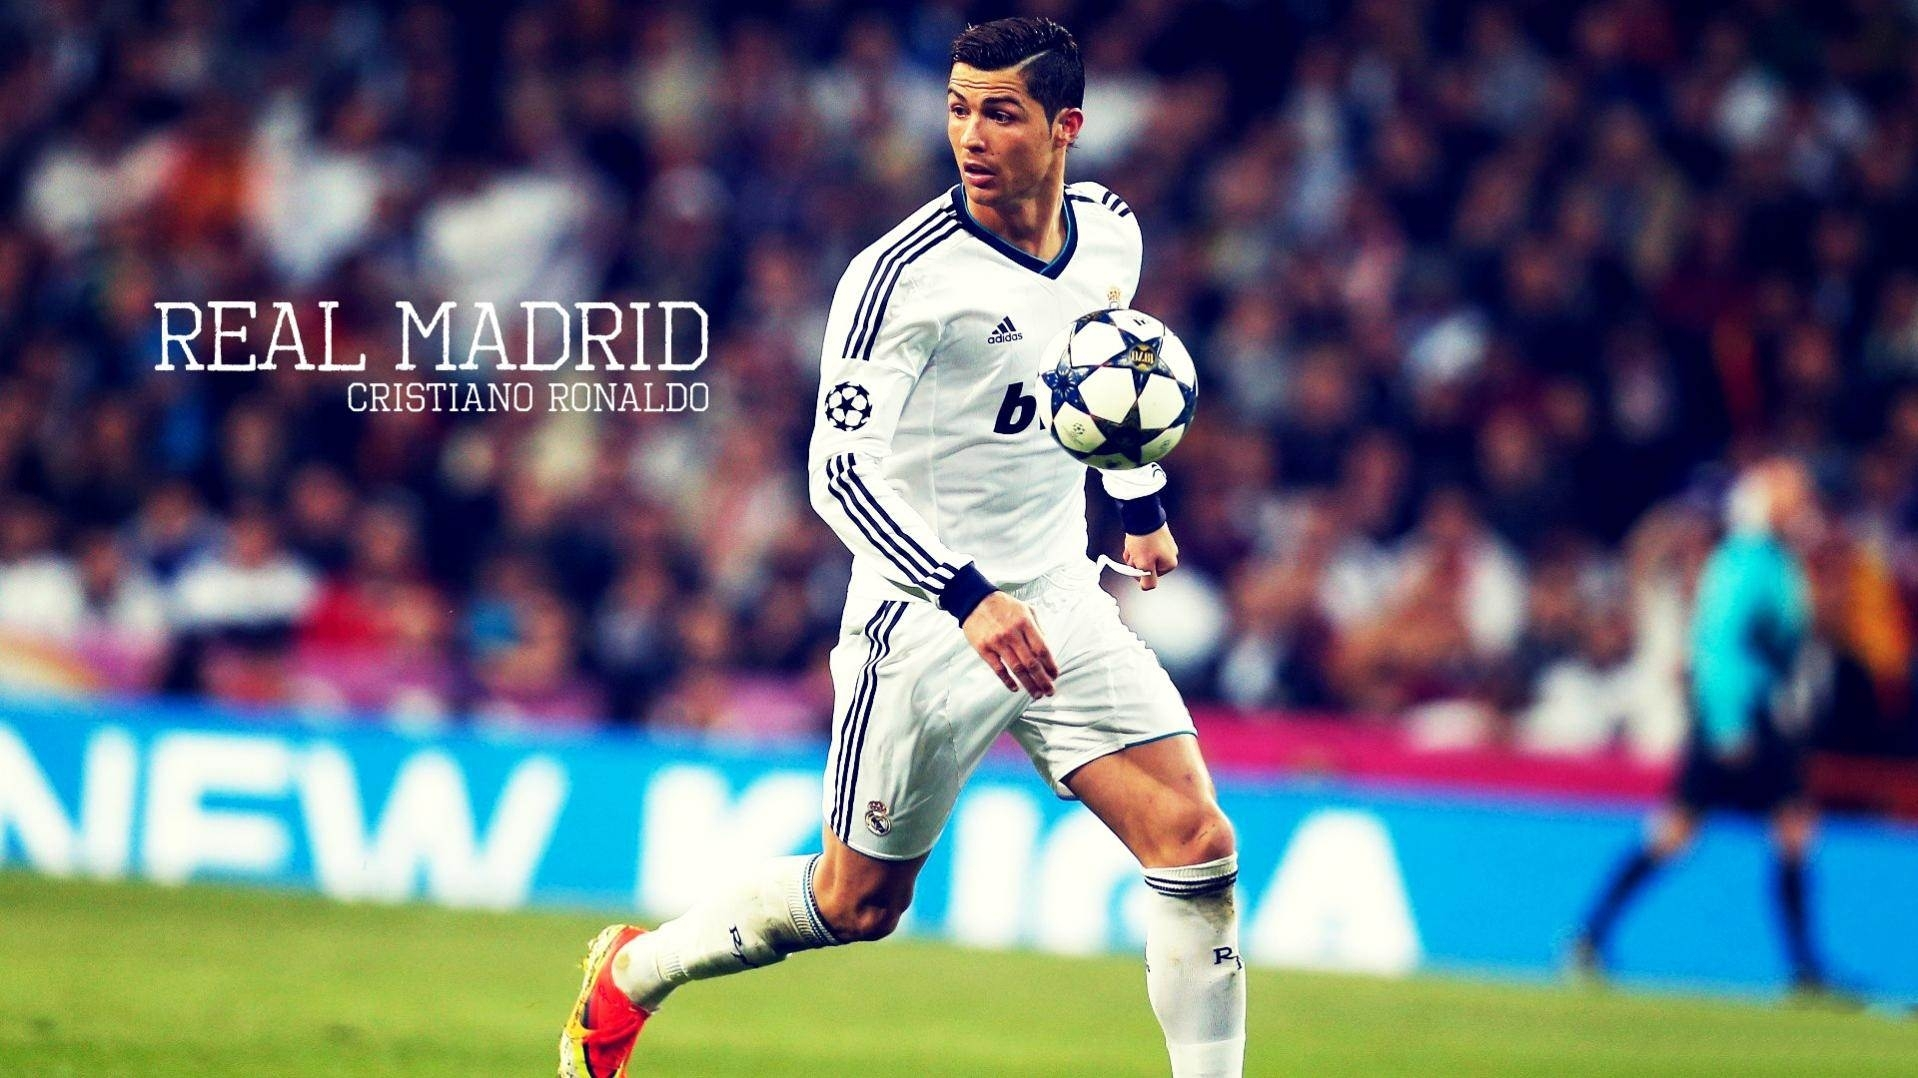 cristiano ronaldo wallpapers hd, desktop backgrounds, images and